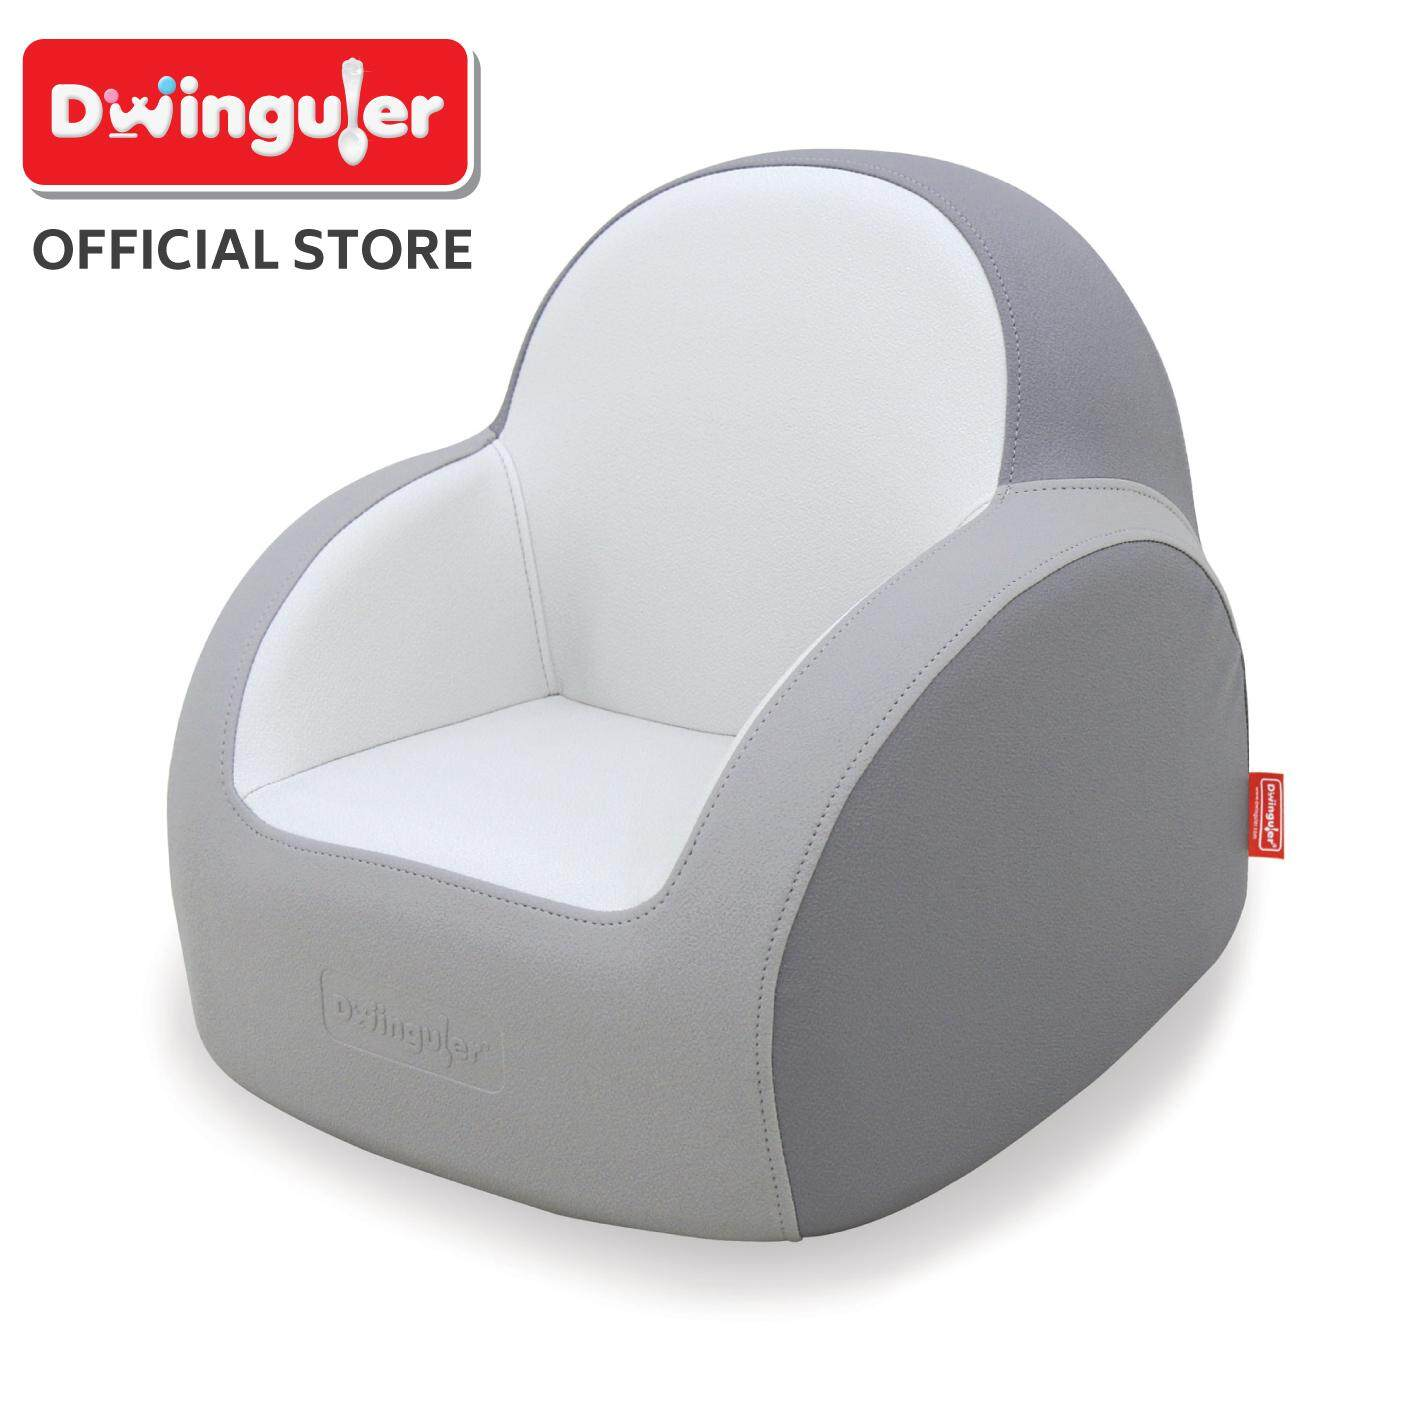 Dwinguler Kid Sofa By Graco, Aprica & Baby Jogger Malaysia.